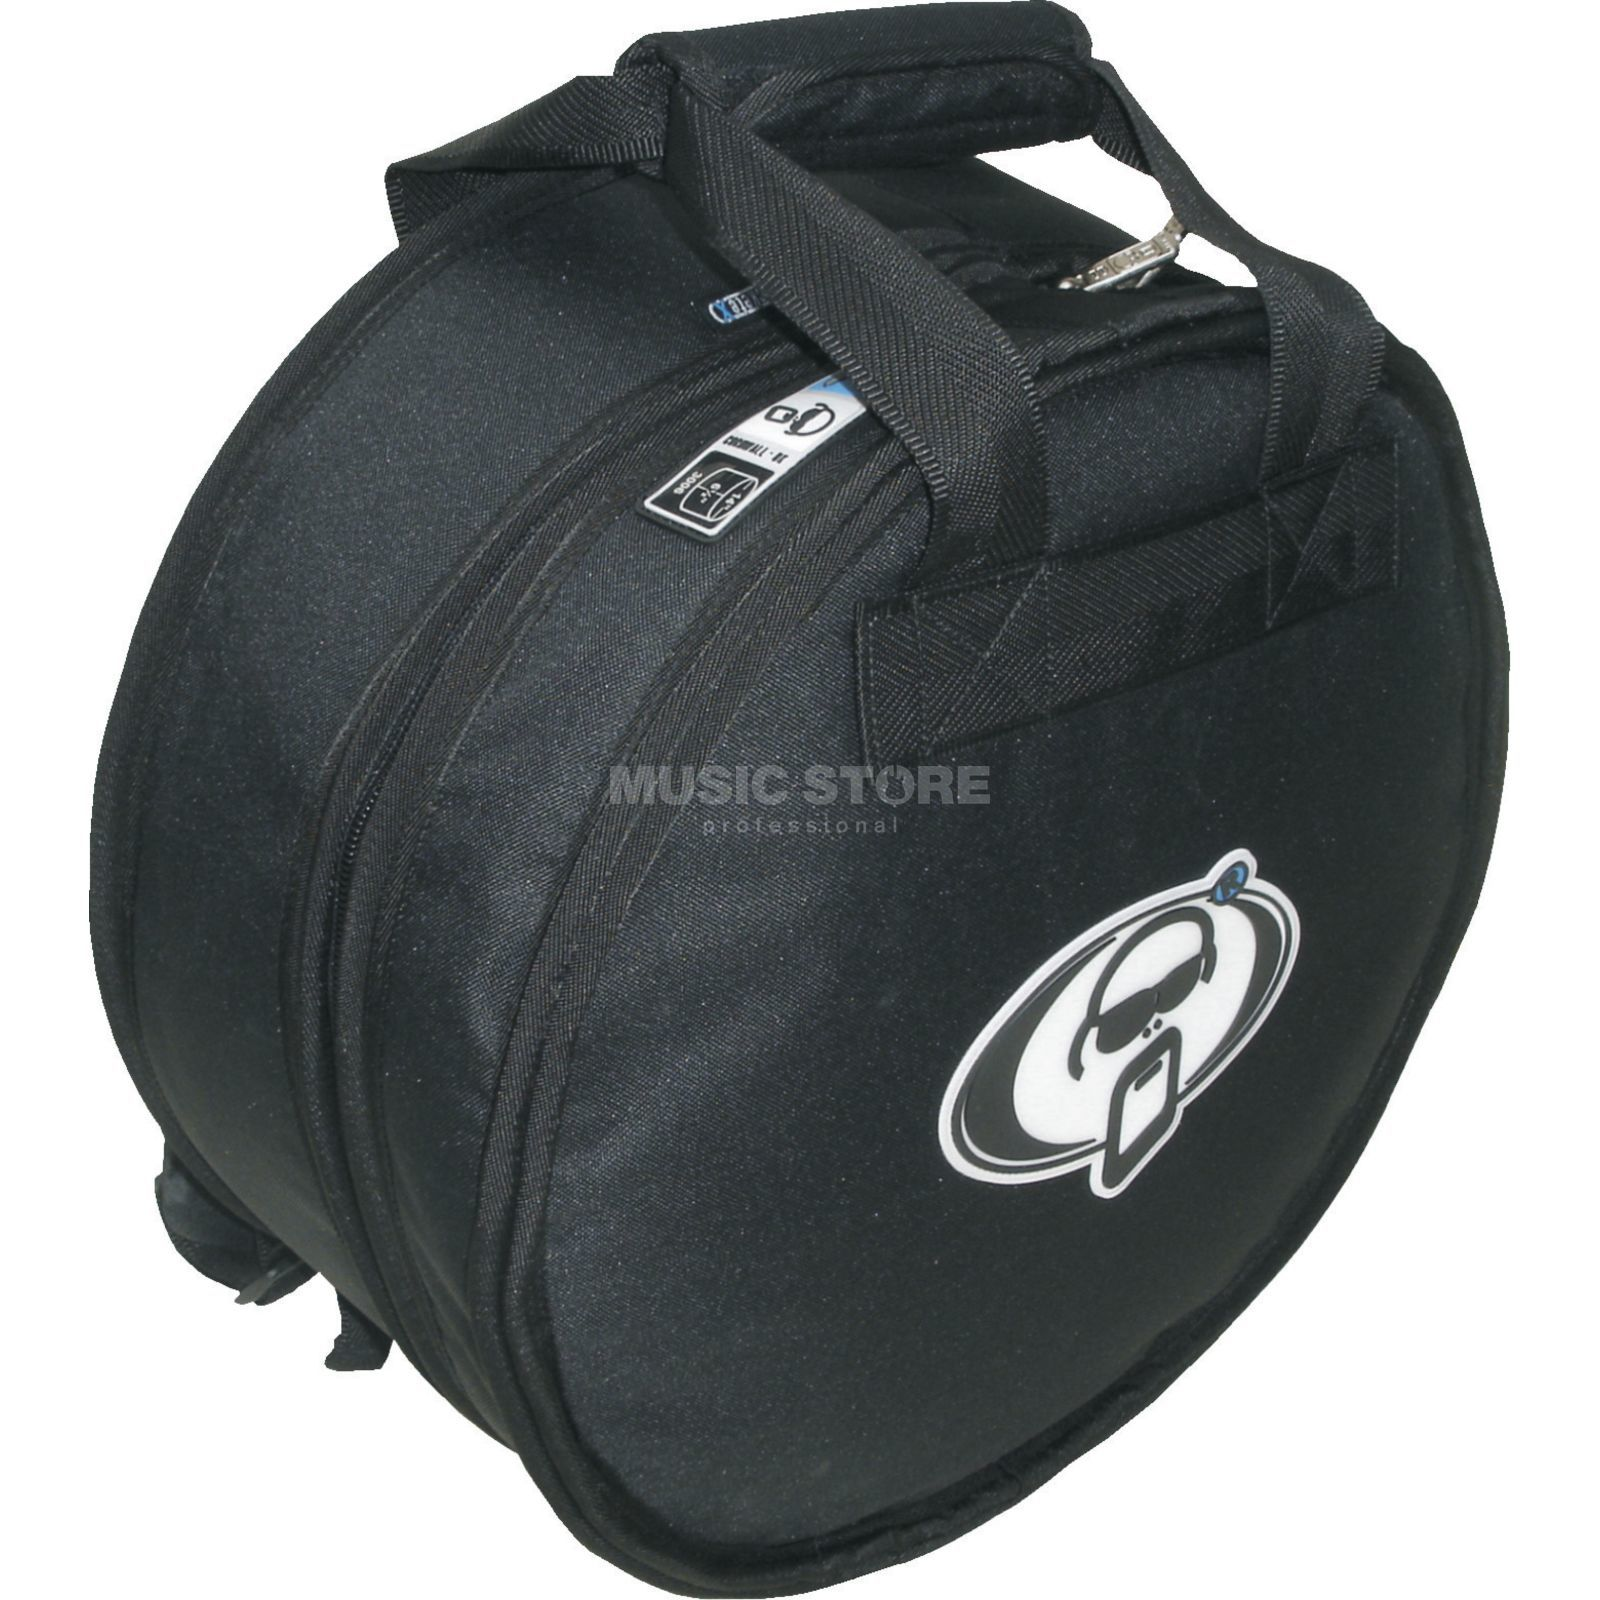 "Protection Racket Snare Bag Rucksack 3006RS, 14""x6,5"" Produktbillede"